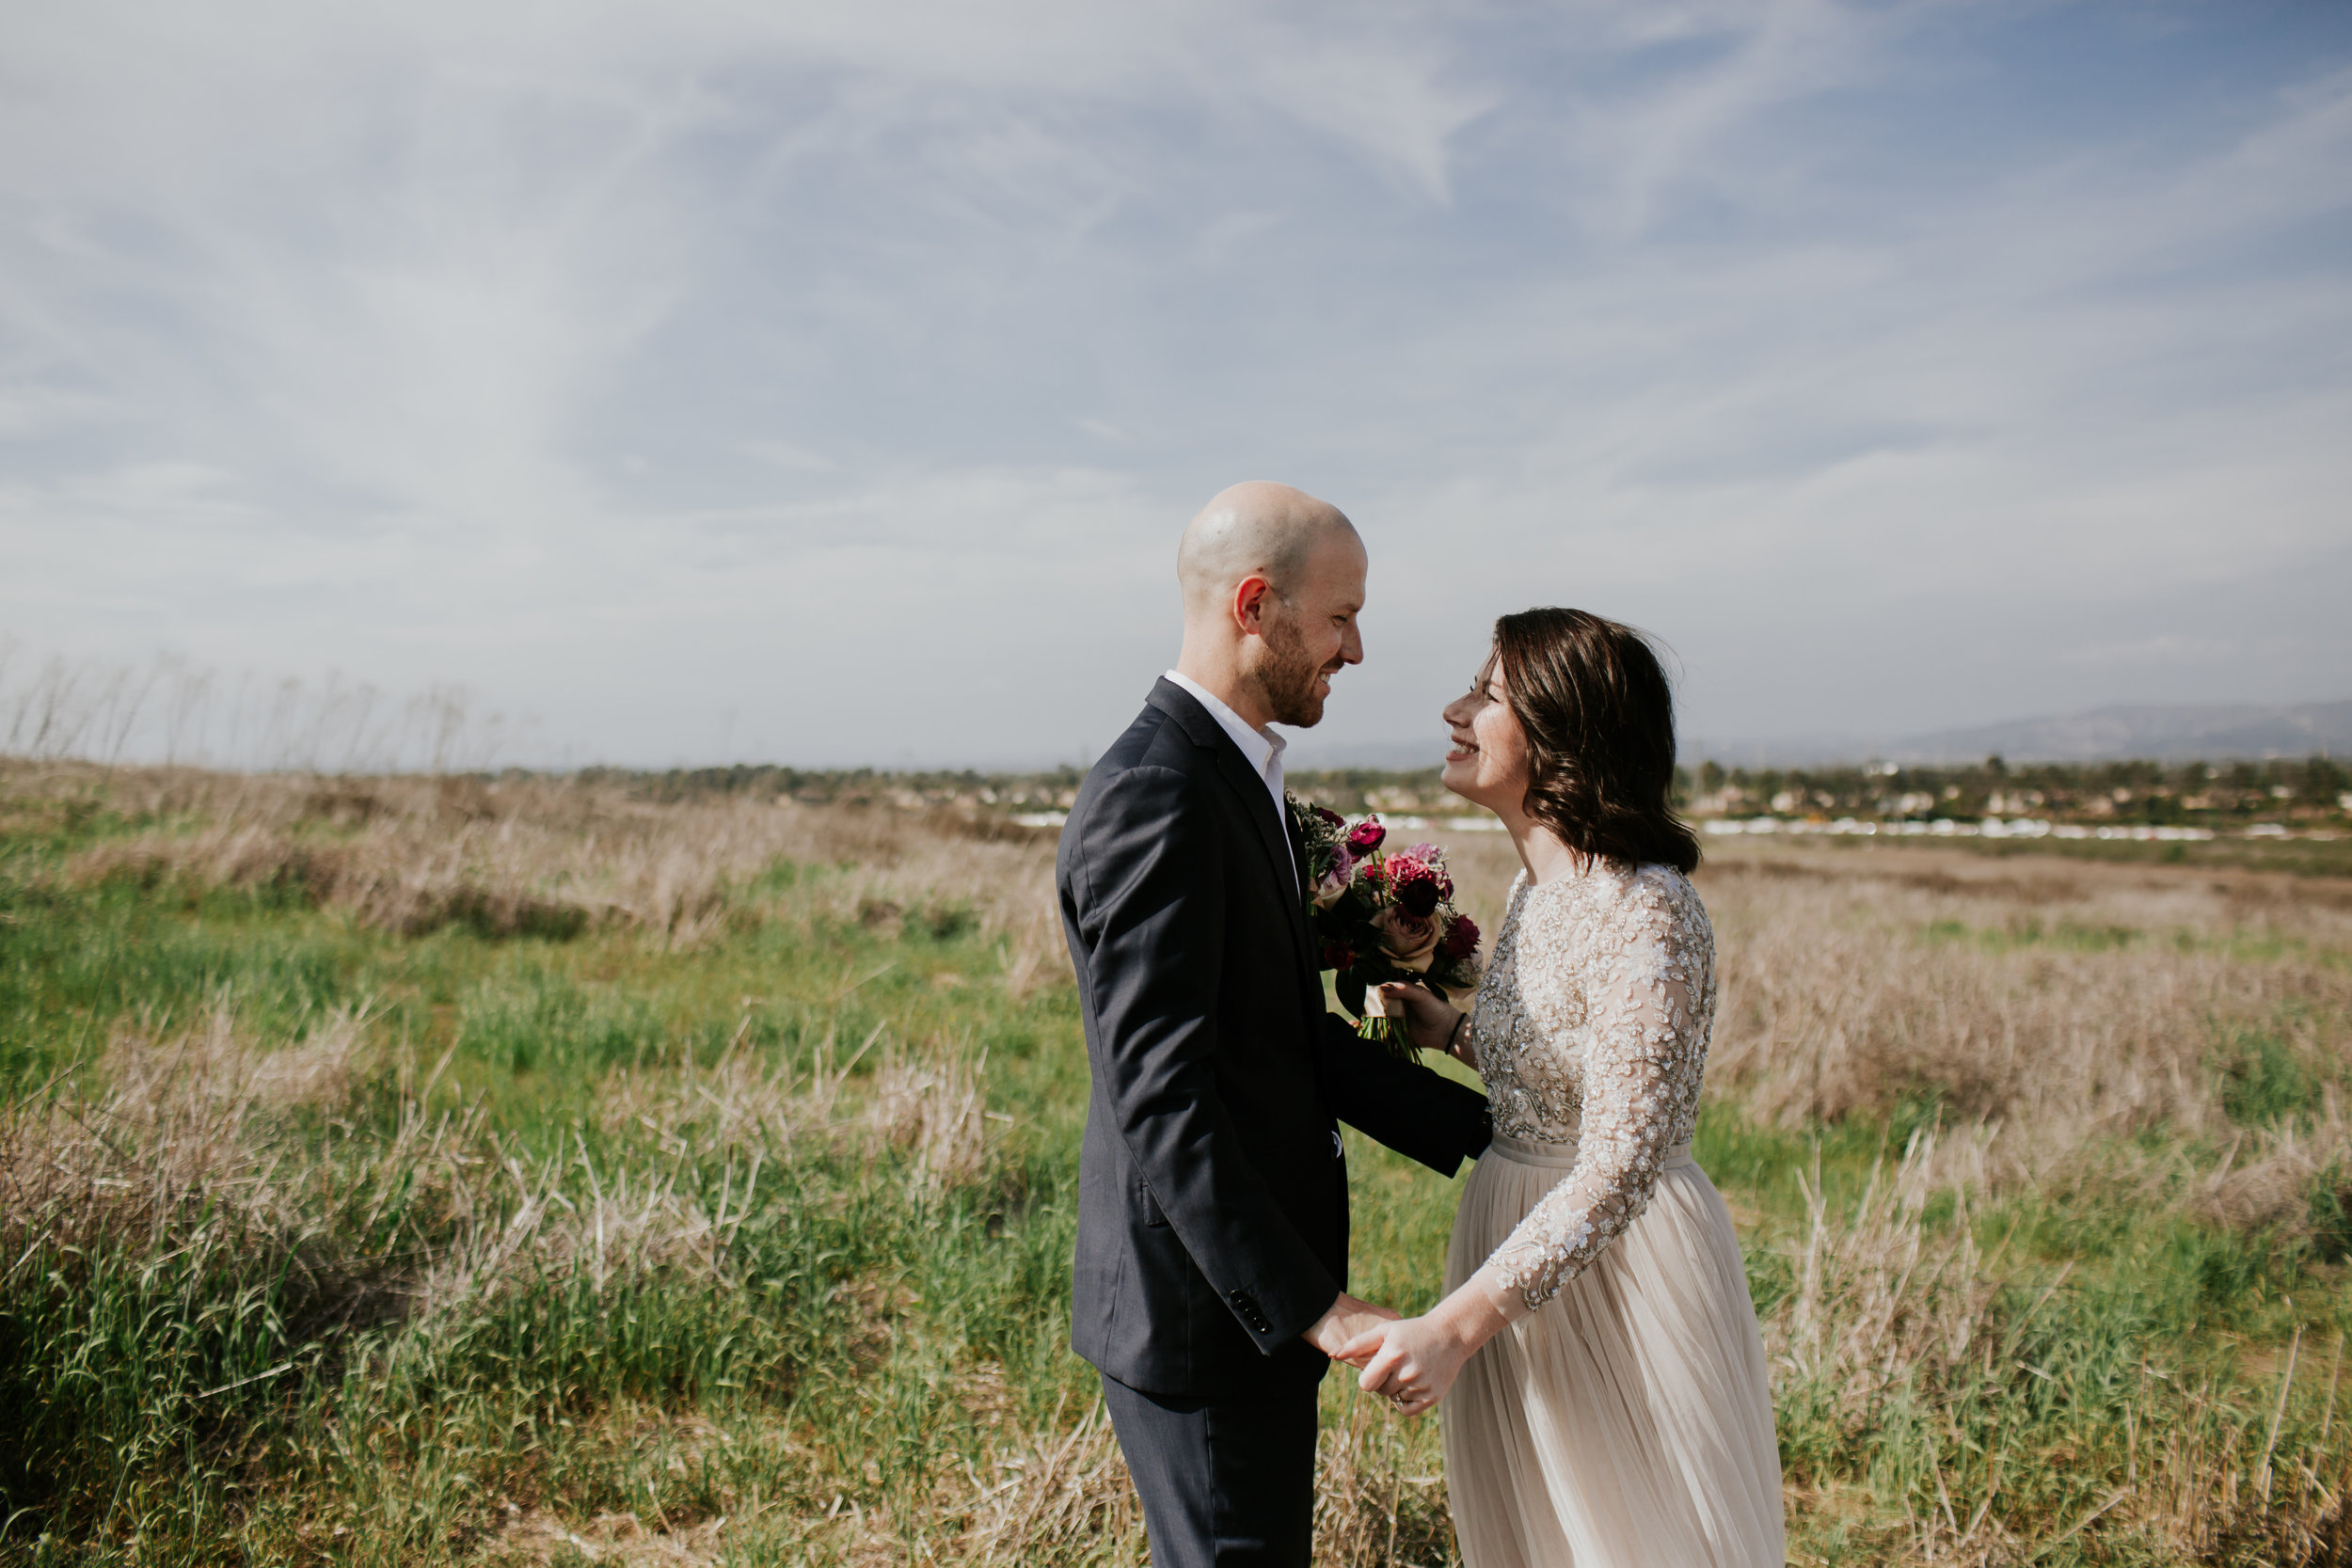 Caydin and Garrett Intimate wedding in Costa Mesa Orange County - Eve Rox Photography-19.jpg